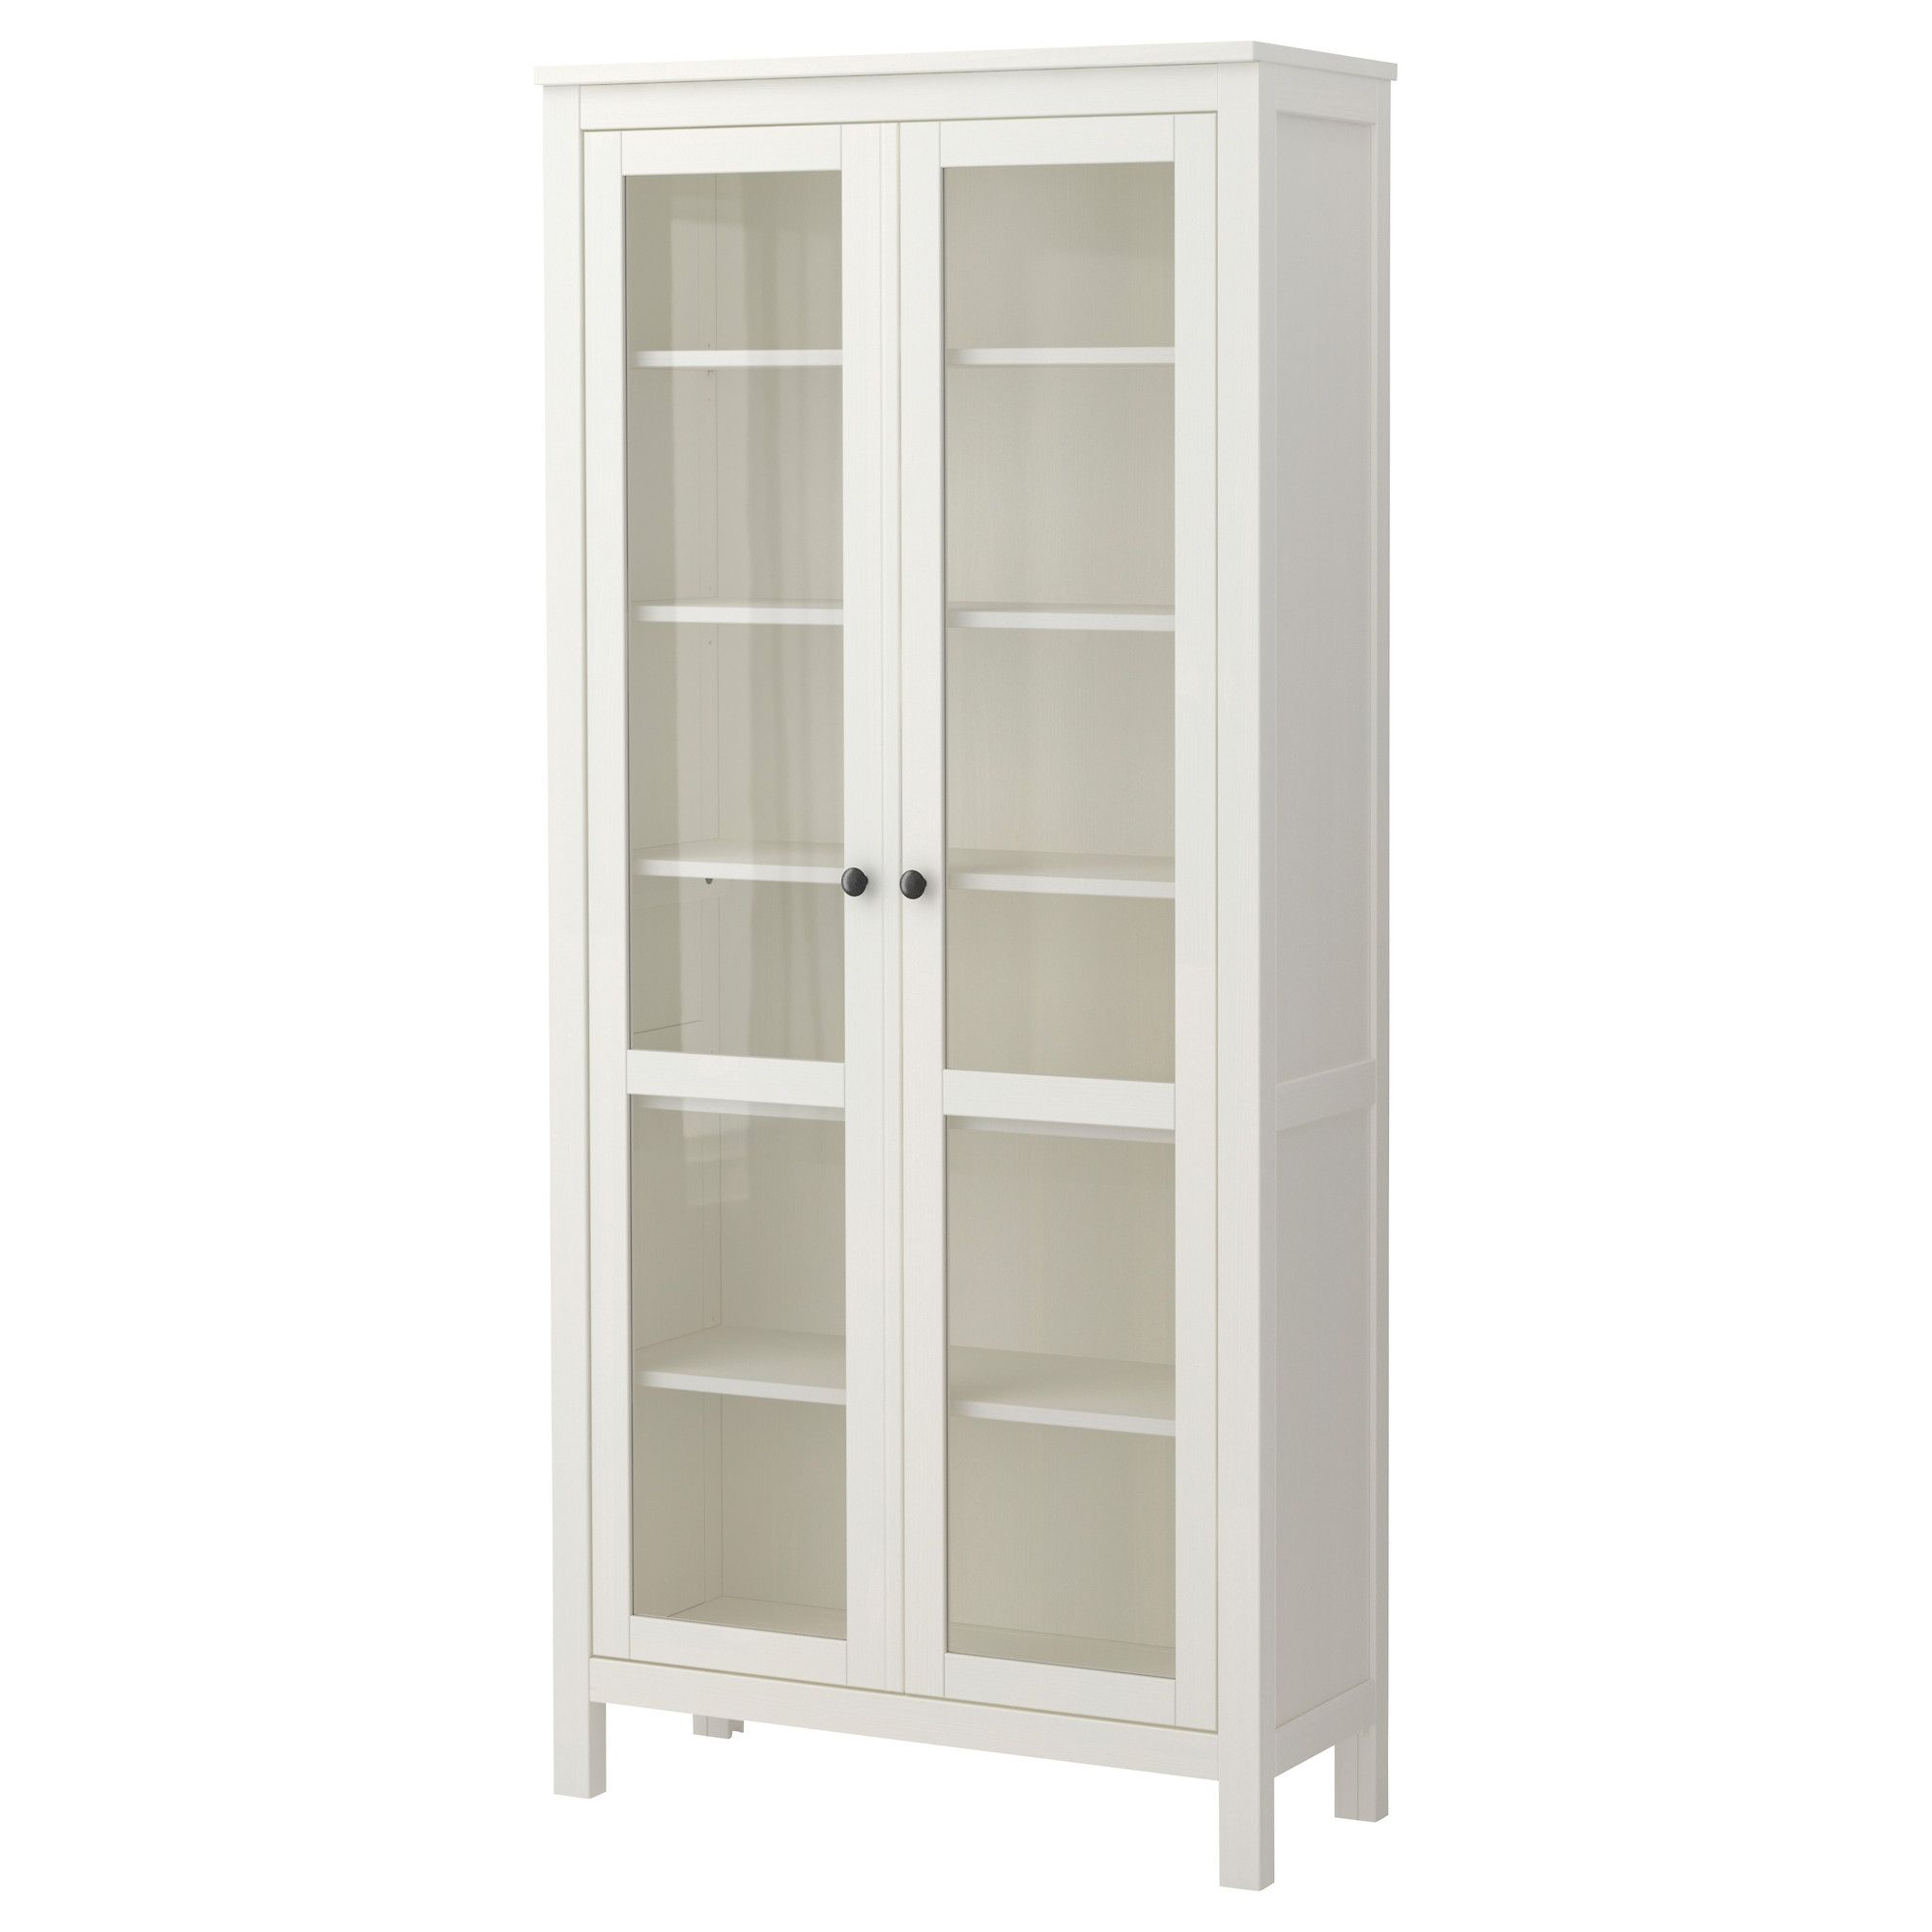 in stock combine w ? HEMNES Glass door cabinet white IKEA The Land of Oak Pinterest